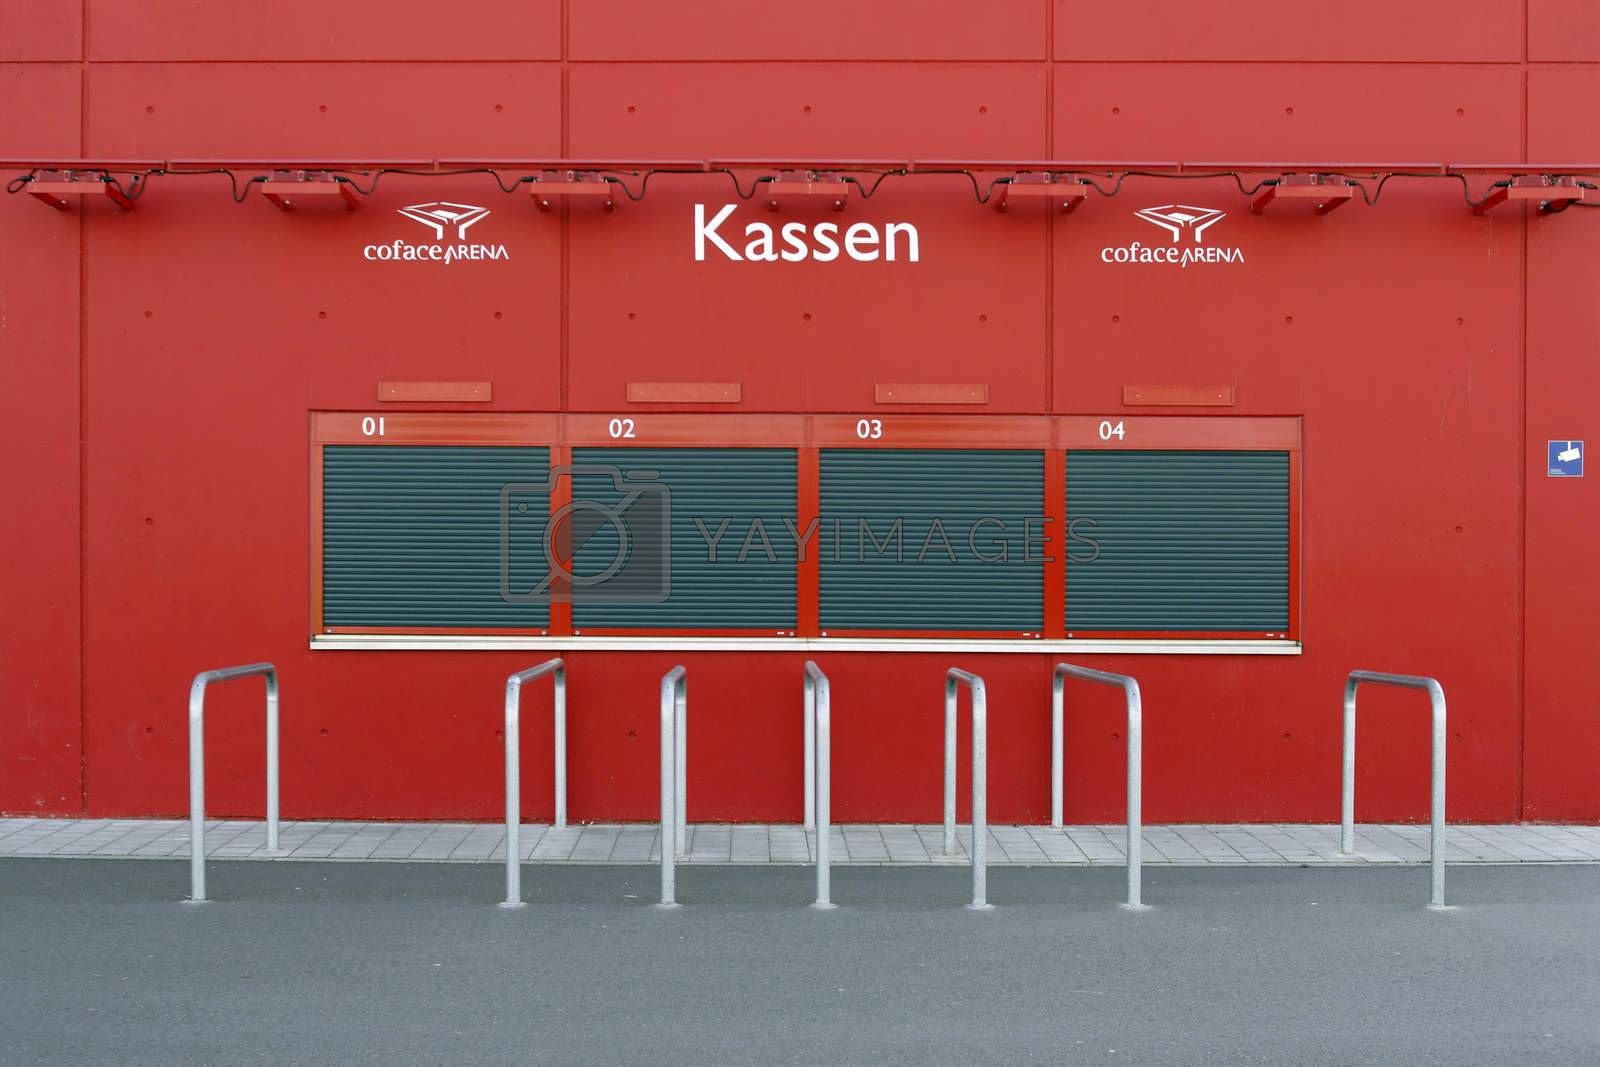 Mainz, Germany - May 17, 2014: Closed ticket booth or ticket sales desks at the Coface Arena stadium of the soccer club 1. FSV Mainz 05 on May 17, 2014 in Mainz.